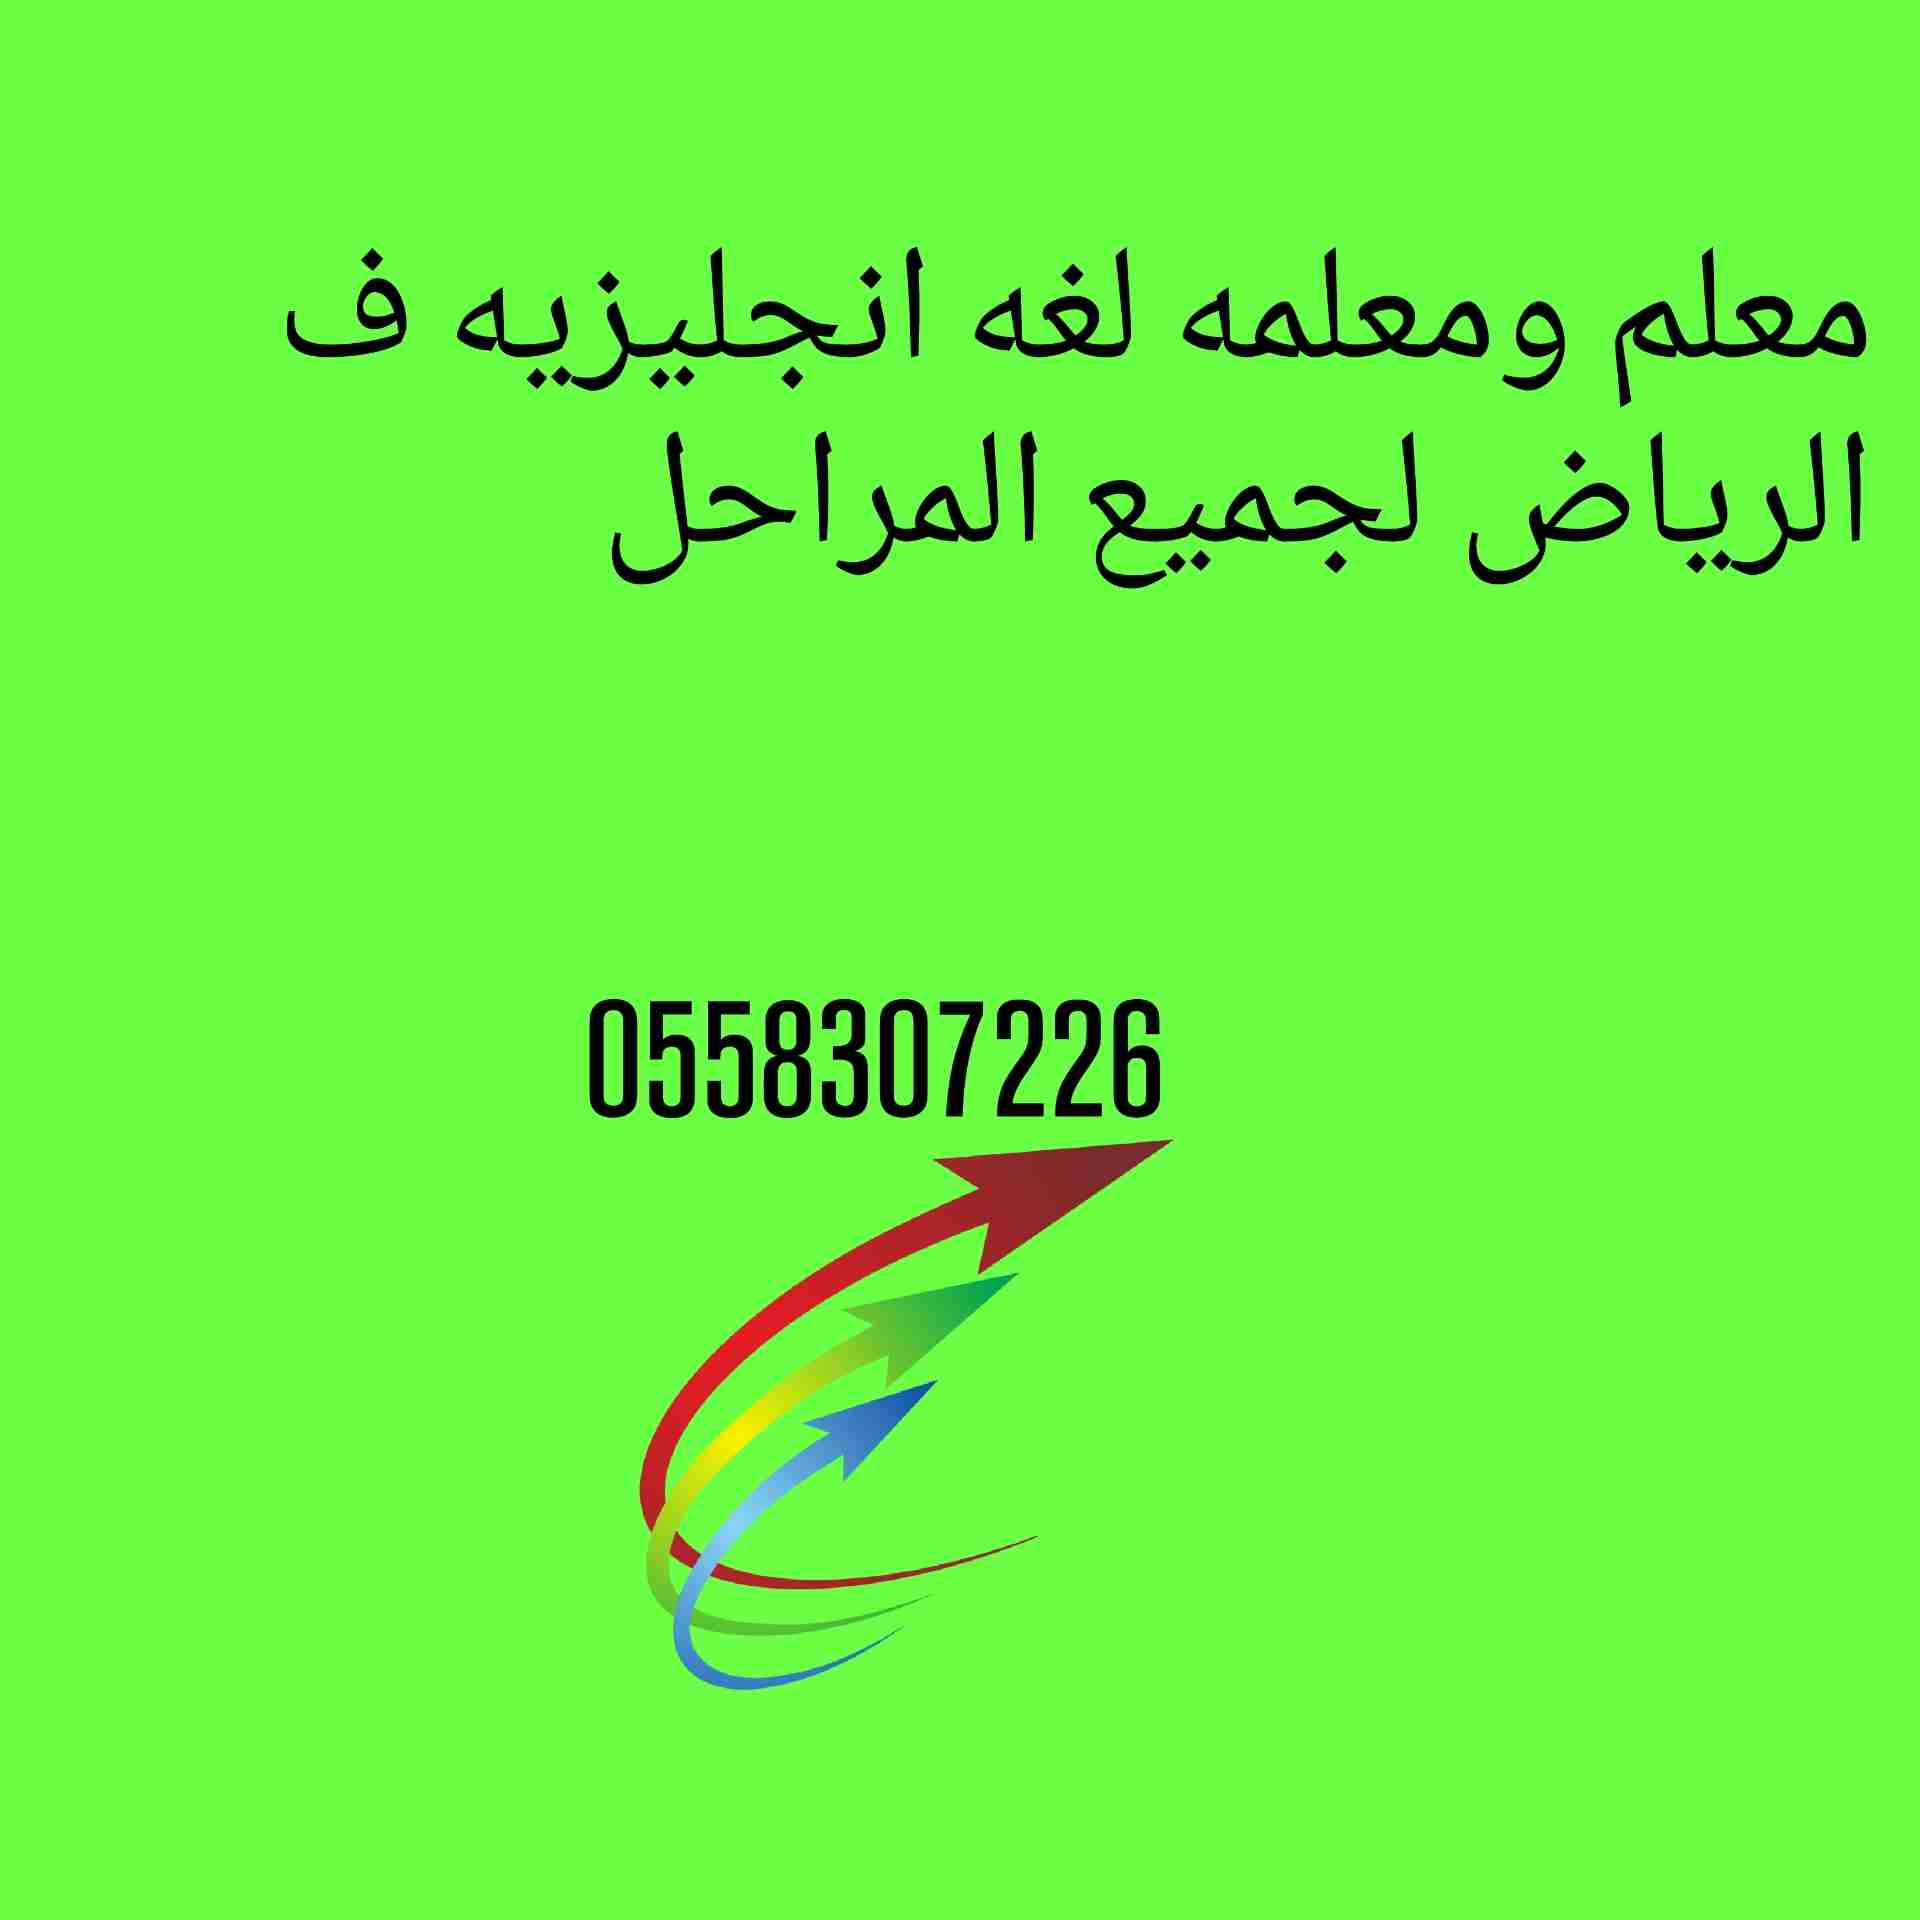 Do You need Unsecured Personal Loan?debt consolidation, home improvements Loan?,Loan To start a new business.Car loans,Mortgage loans Business Loans?Internation-  معلمه لغه انجليزيه ومعلم...